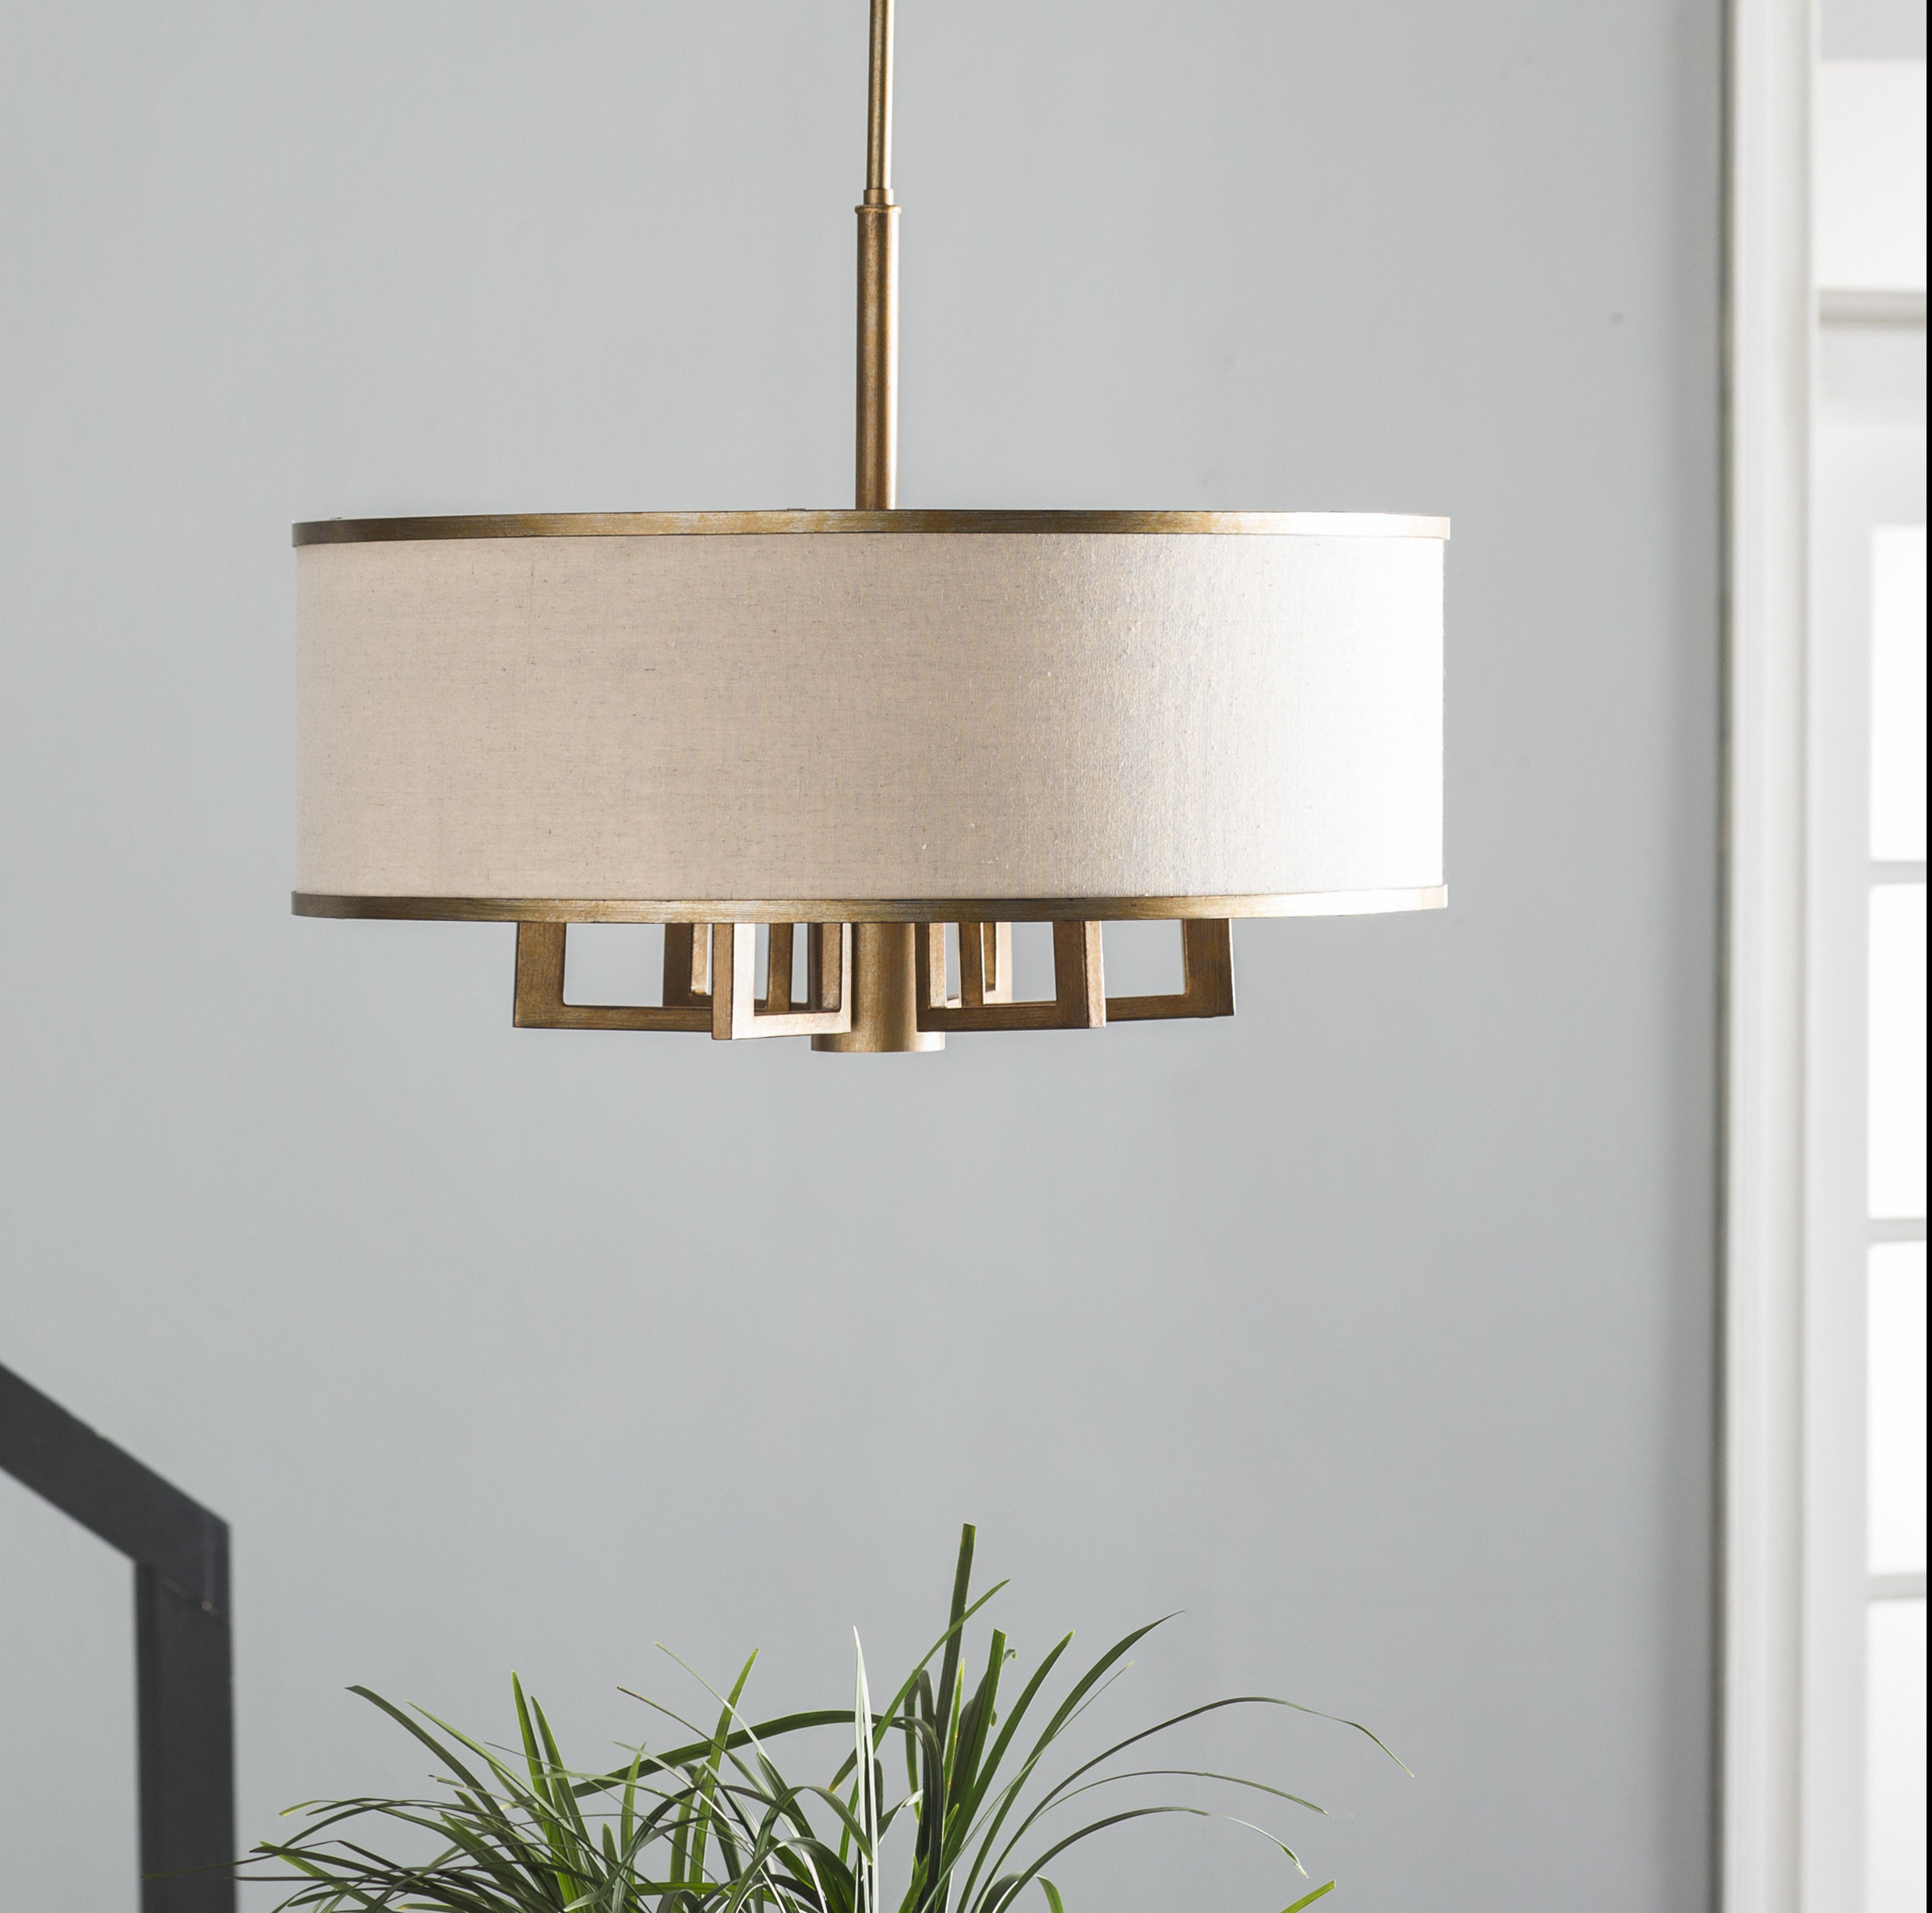 Breithaup 7-Light Drum Chandelier for Favorite Breithaup 7-Light Drum Chandeliers